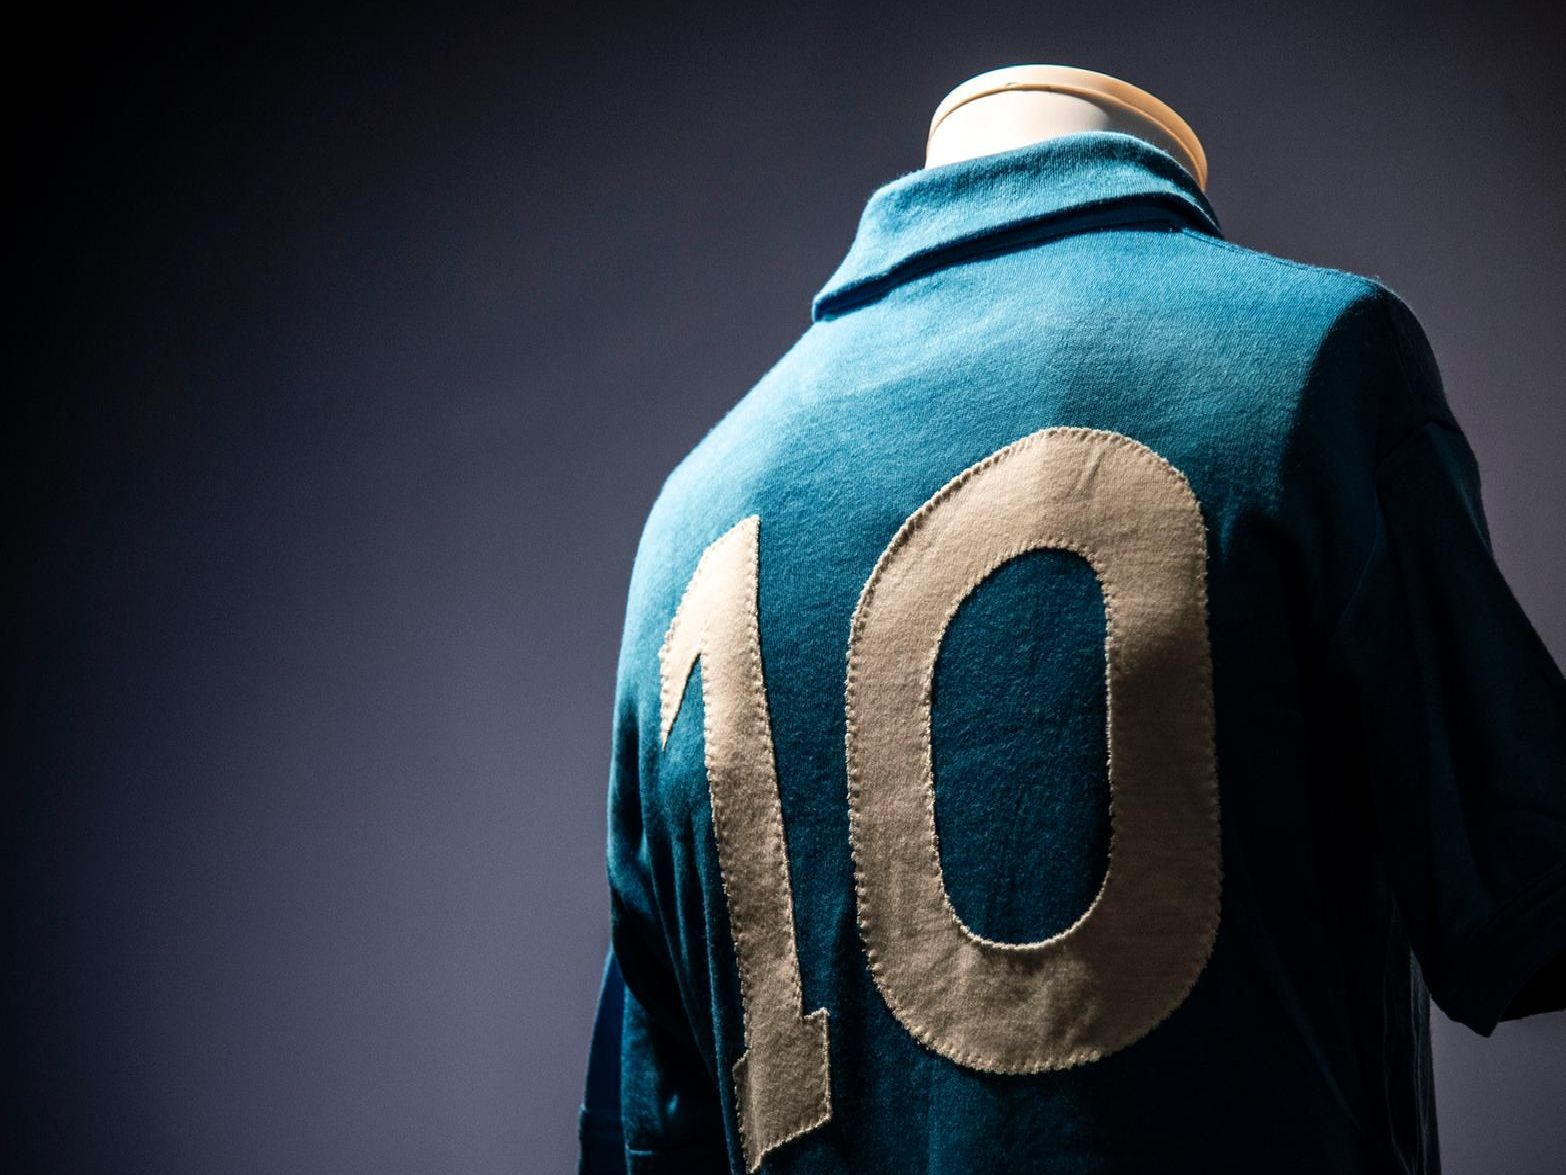 The oldest football clubs: How every team ranks in order of when they were founded